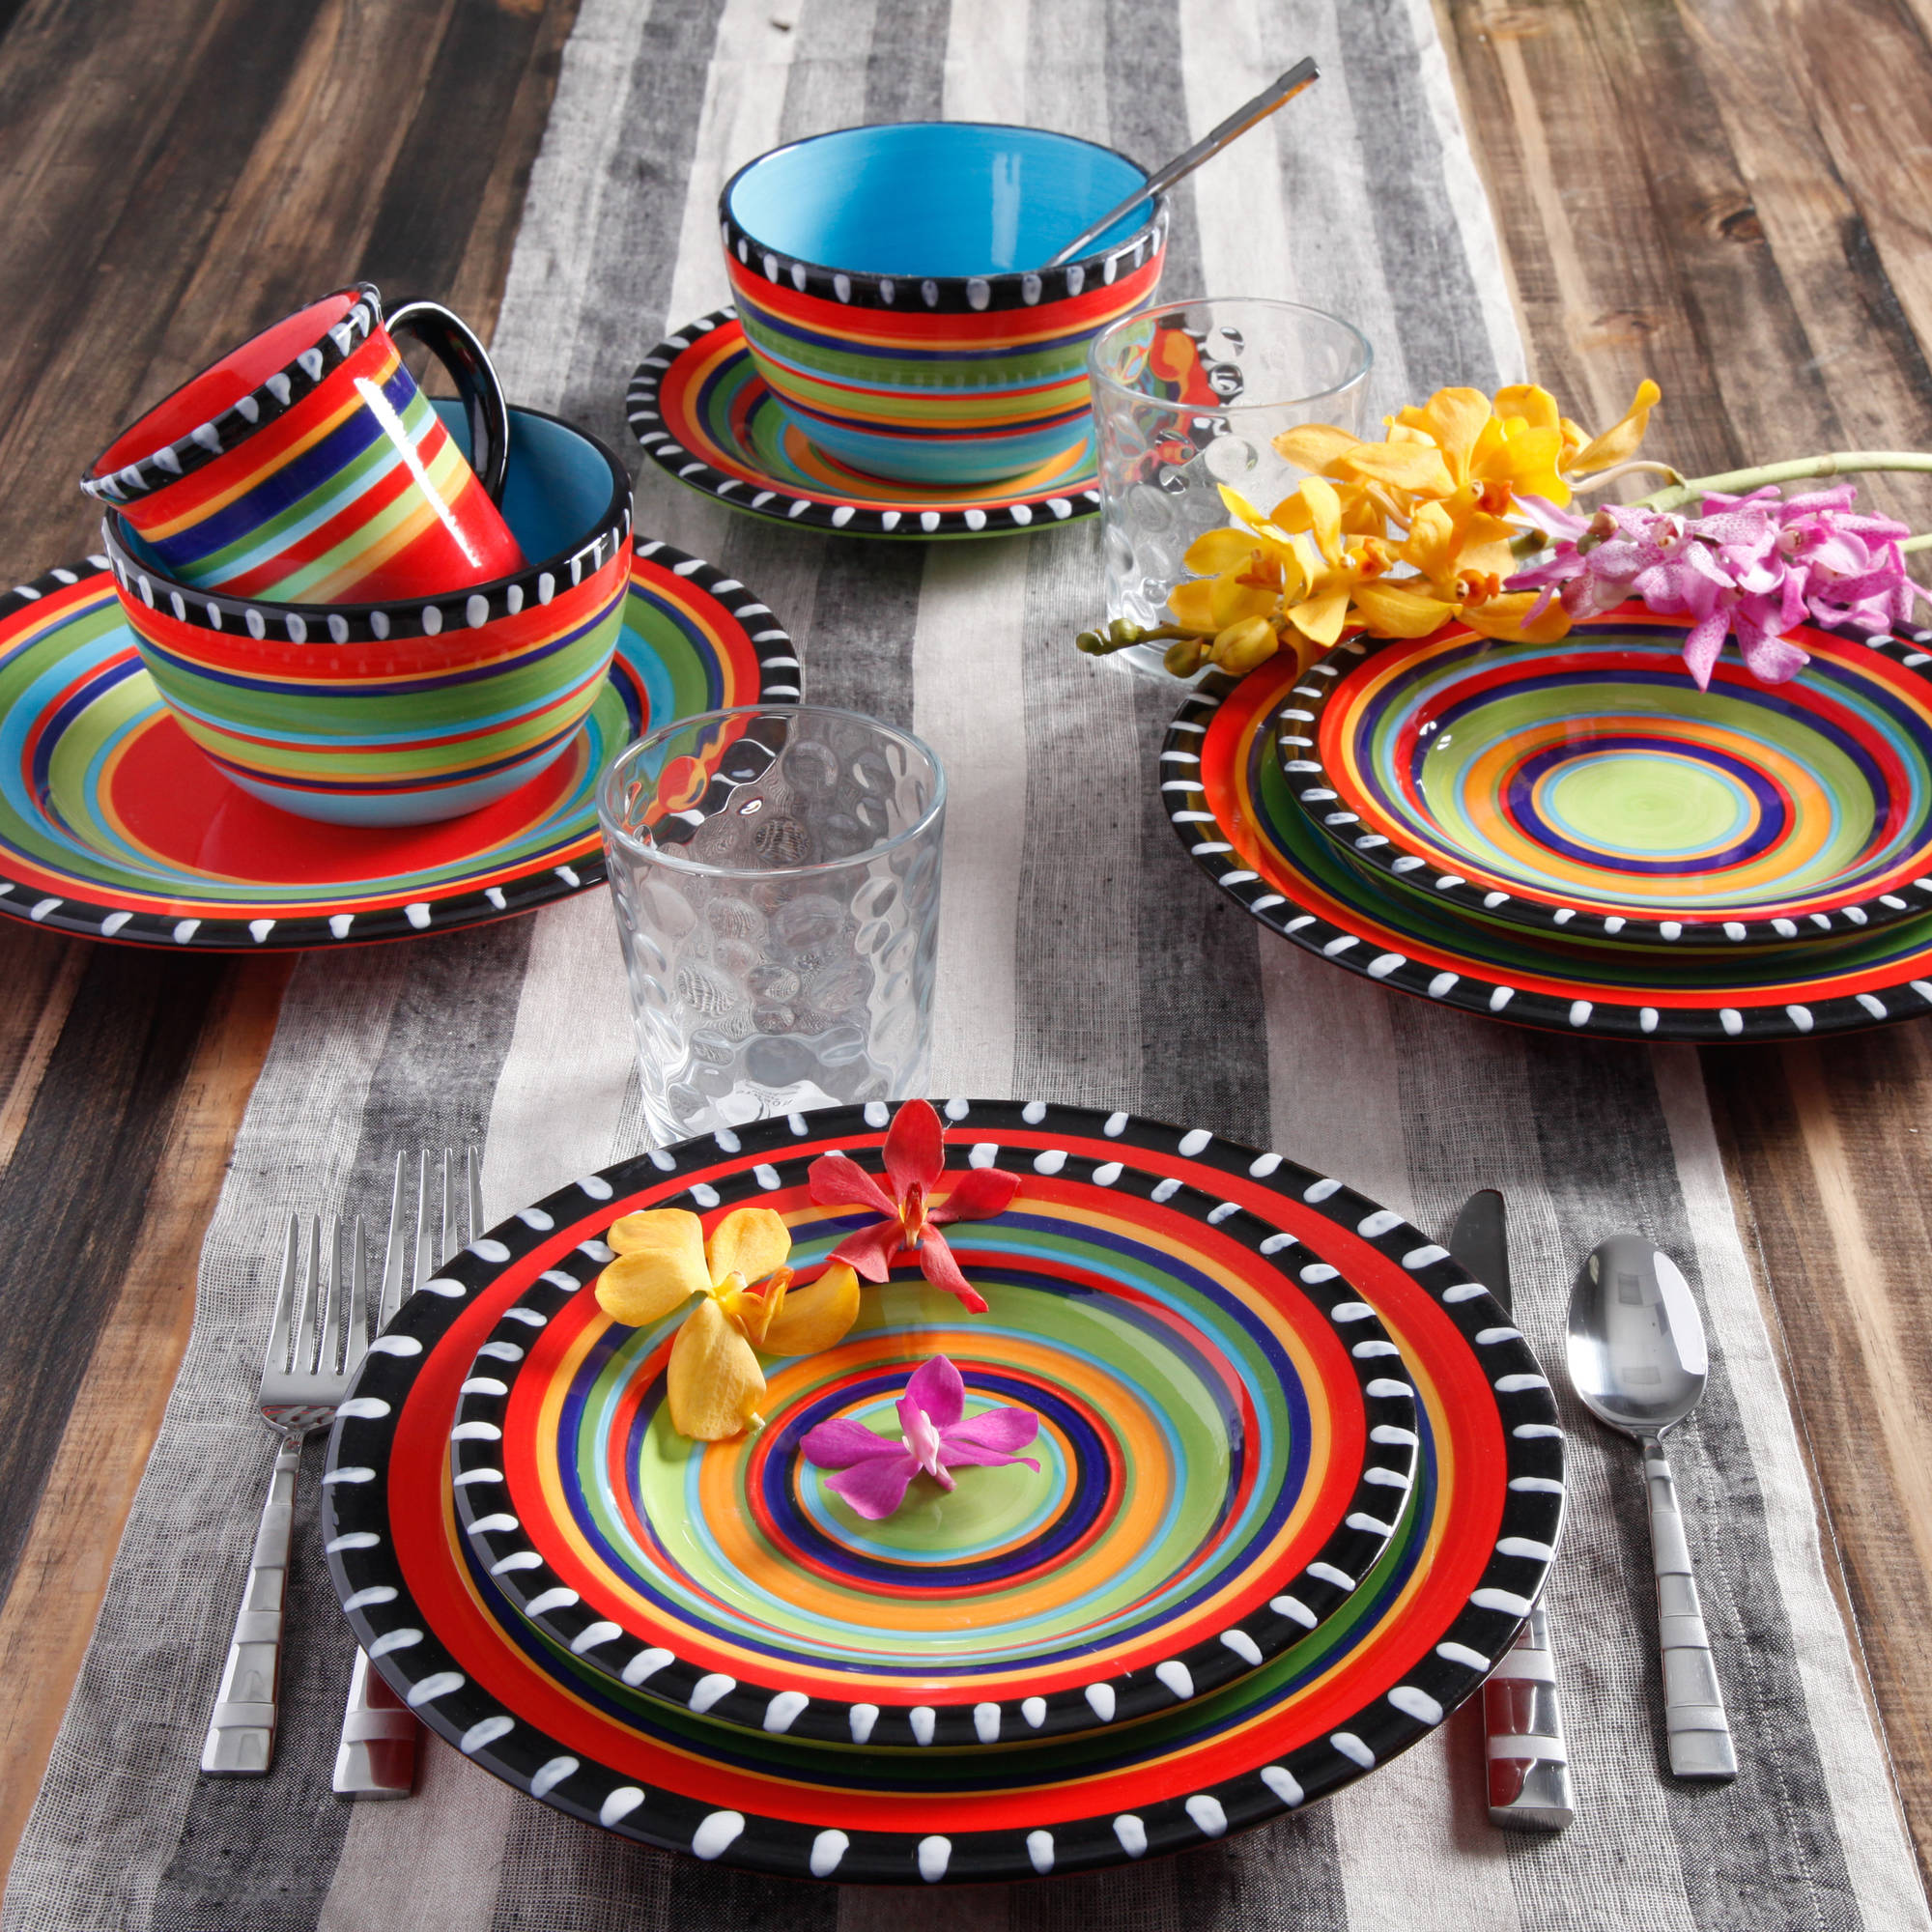 Gibson elite Home Pueblo Springs Handpainted 16 Piece Dinnerware SetMulti- Color & Home Pueblo Springs Handpainted 16 Piece Dinnerware Set PLATES ...